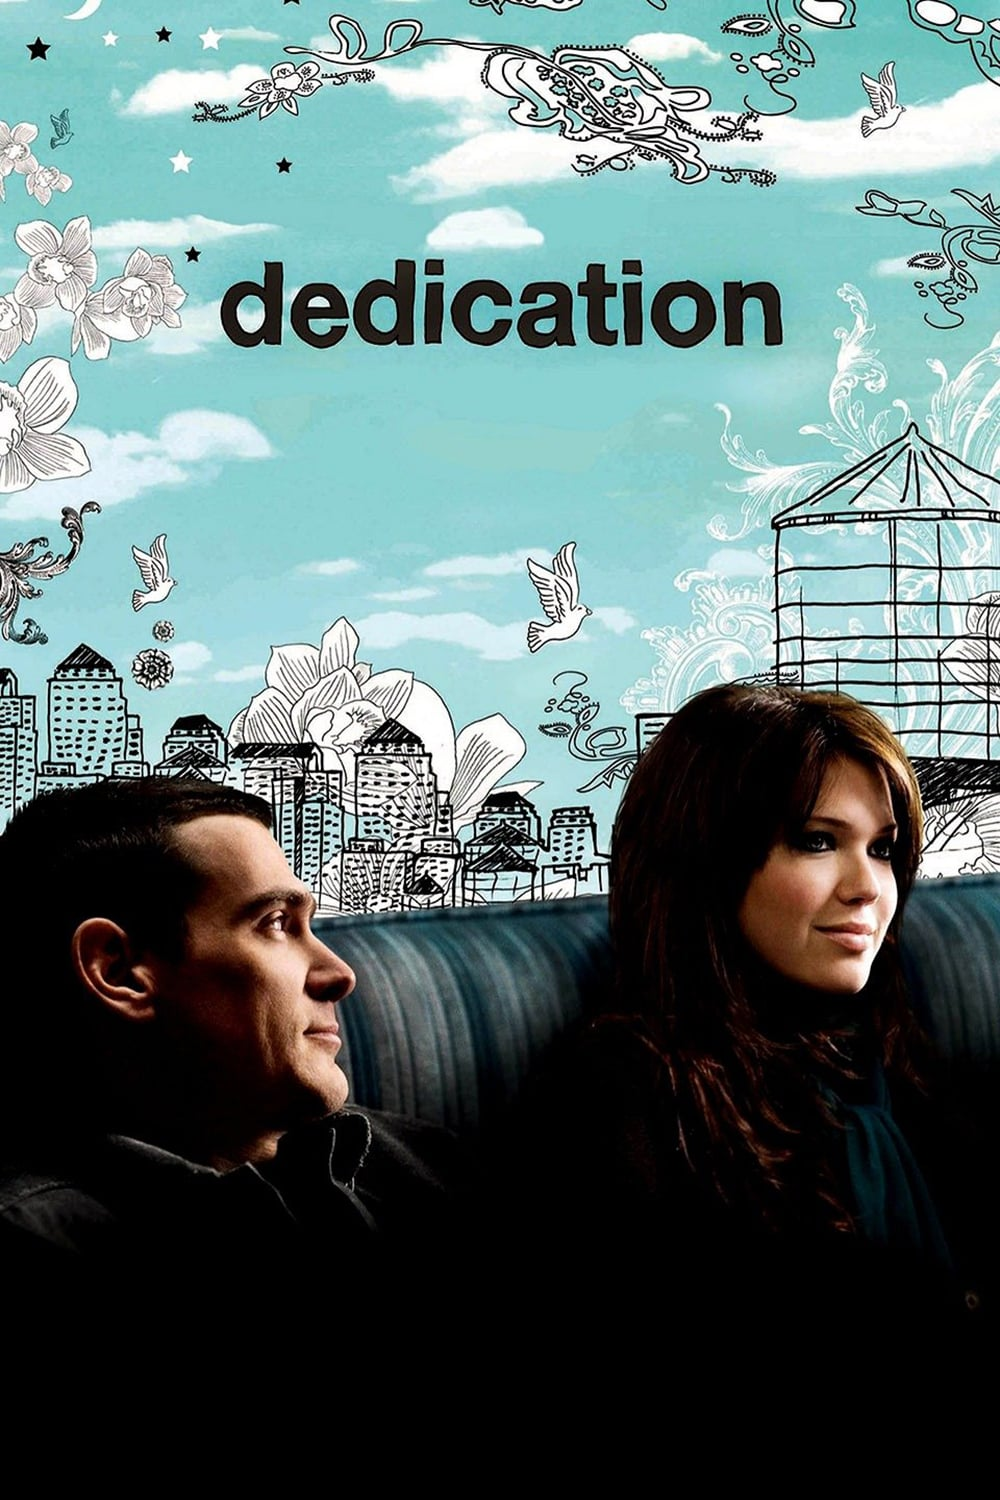 Dedication Movie Streaming Online